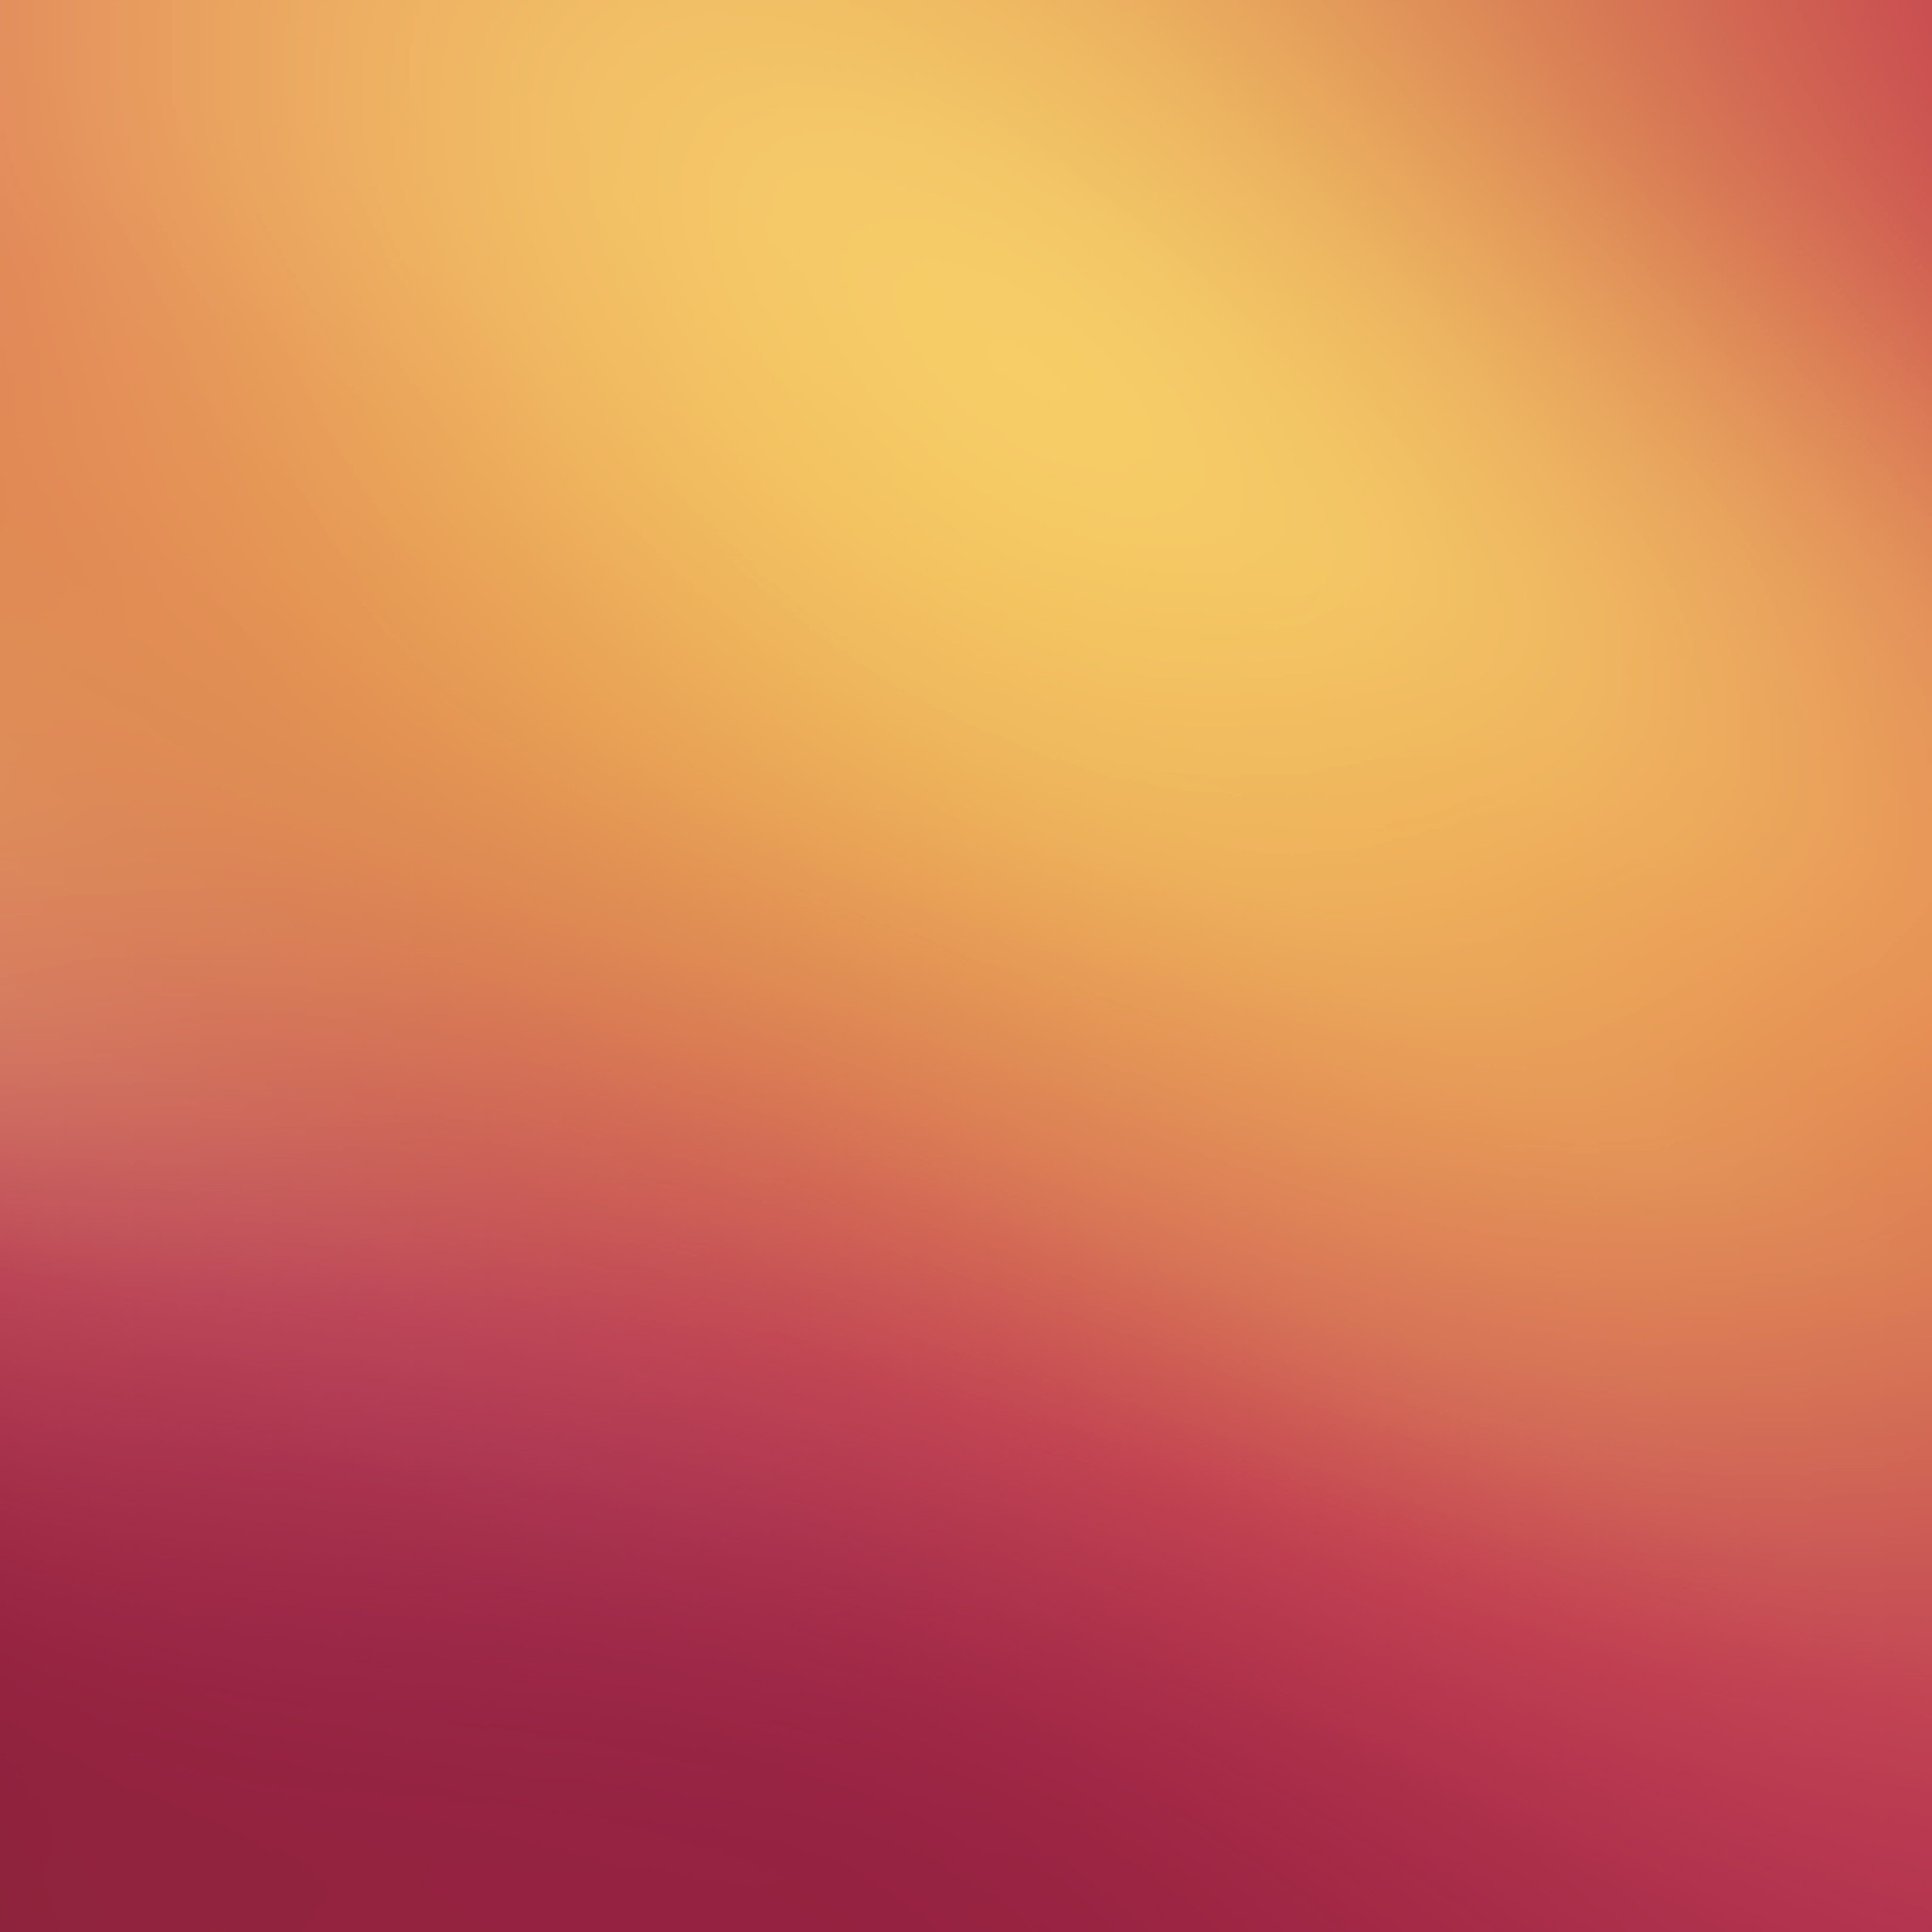 2048x2048 Orange Blend - Tap to see more simple gradient abstract wallpapers!